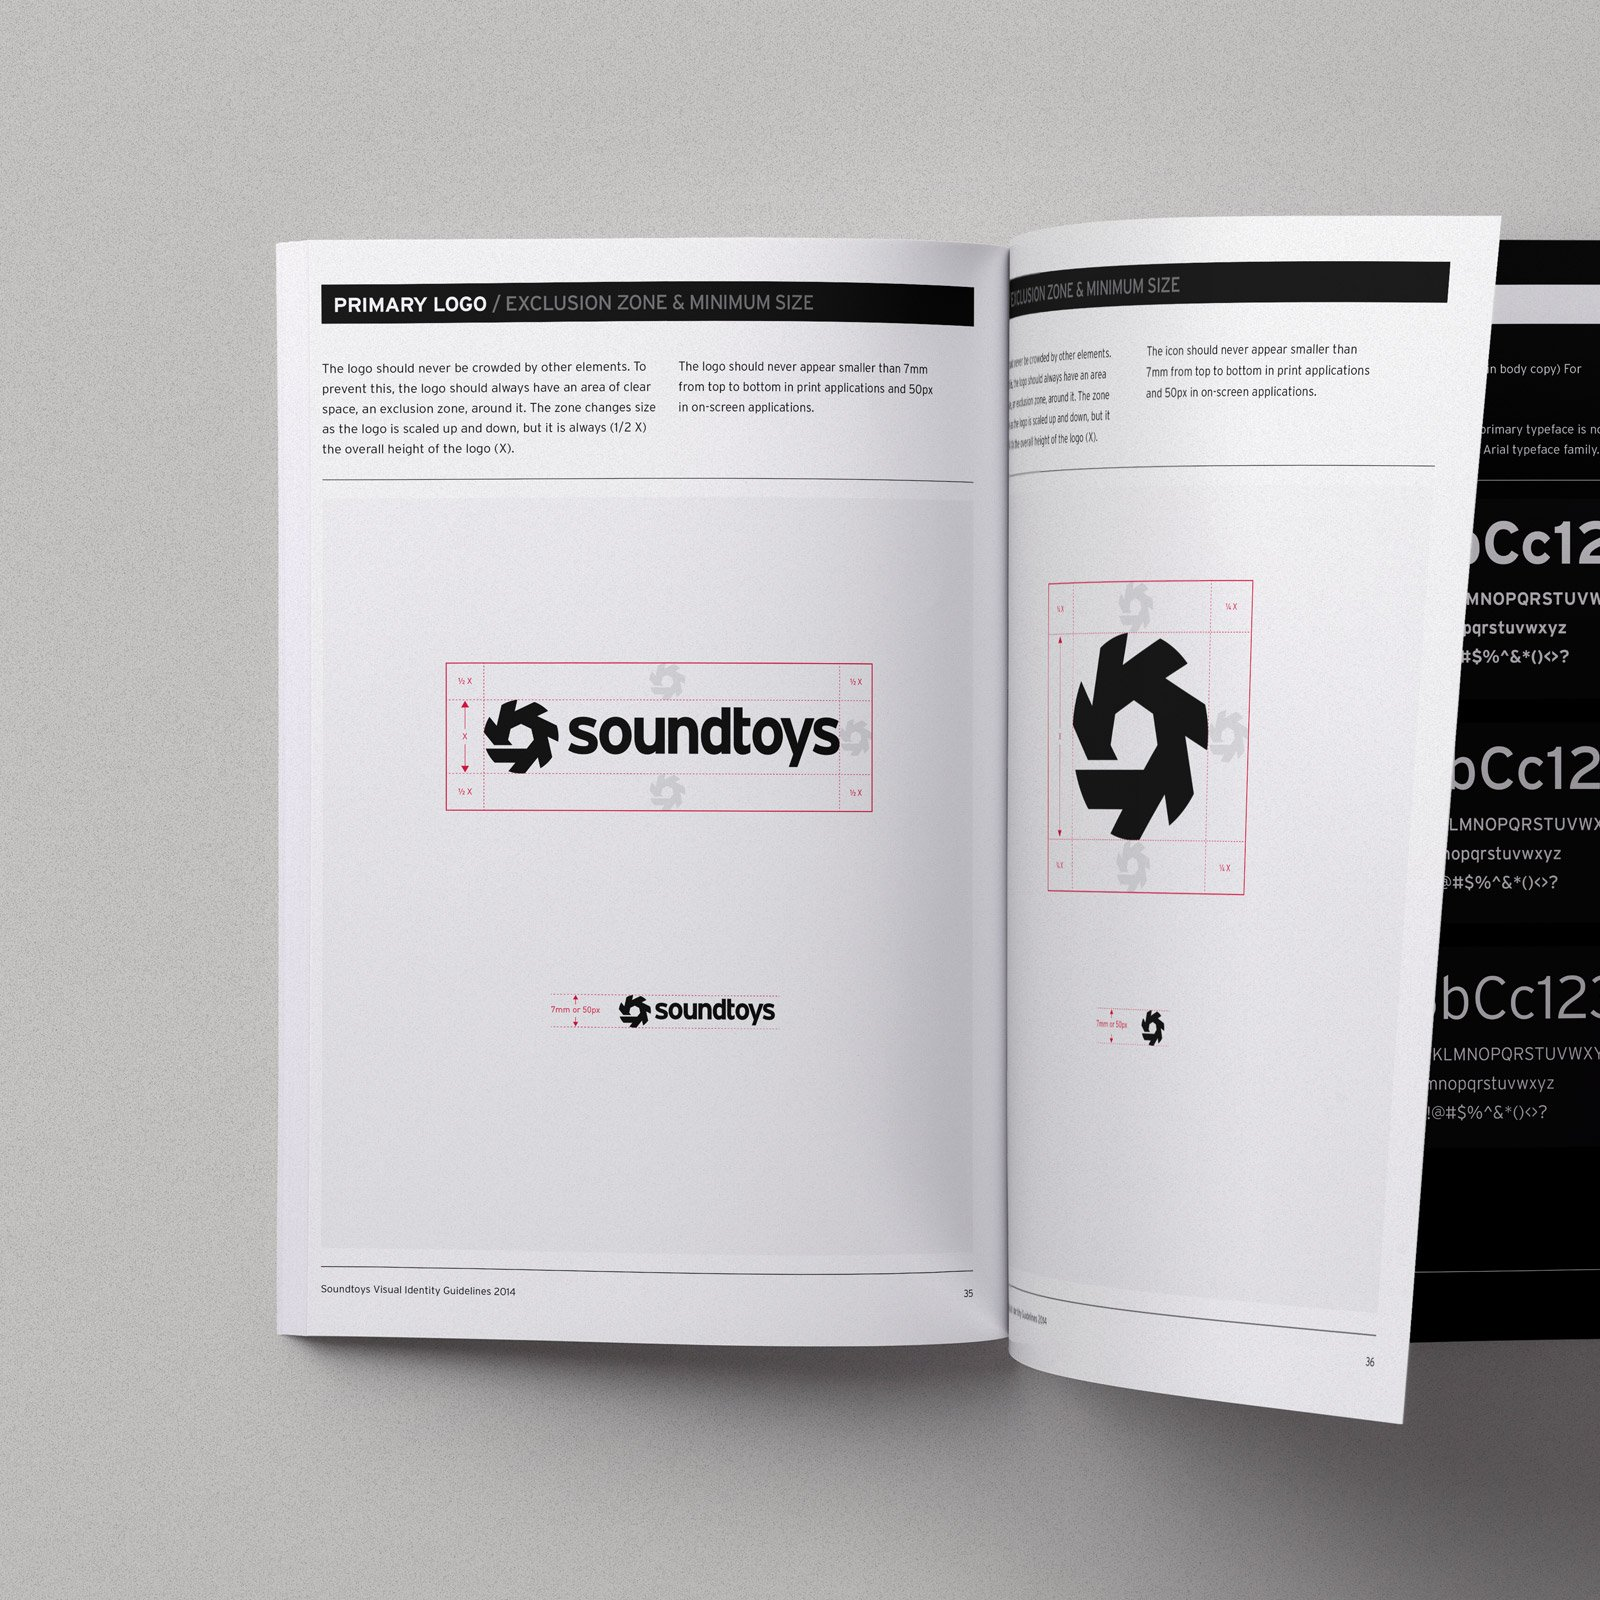 Soundtoys Brand Identity Design for Music Software